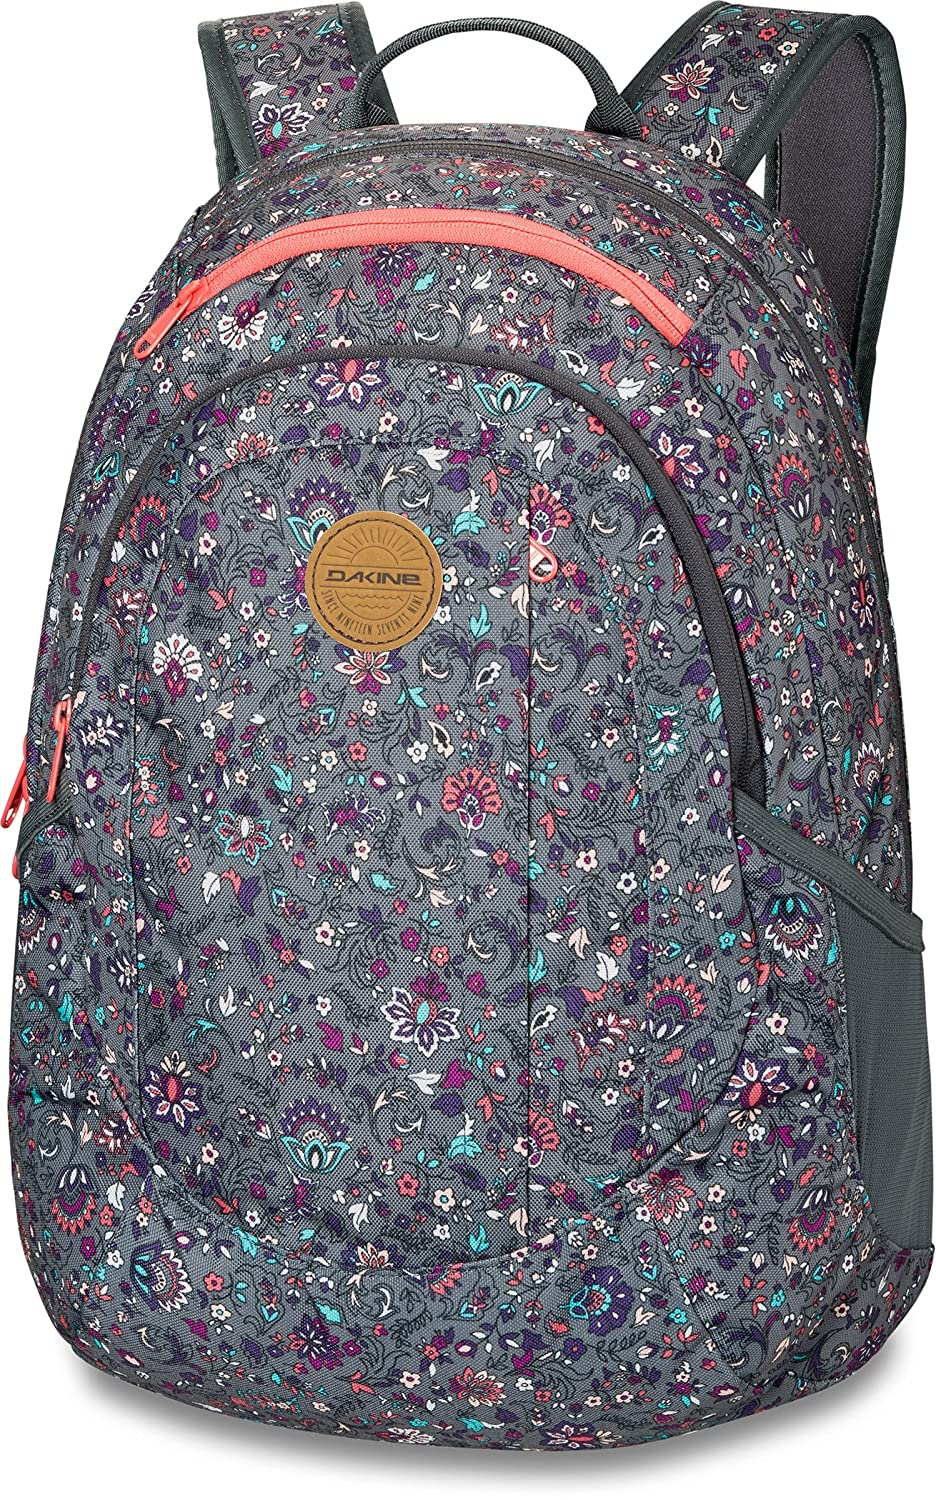 Dakine Garden Backpack, Aquamarine, 20 L 10000751